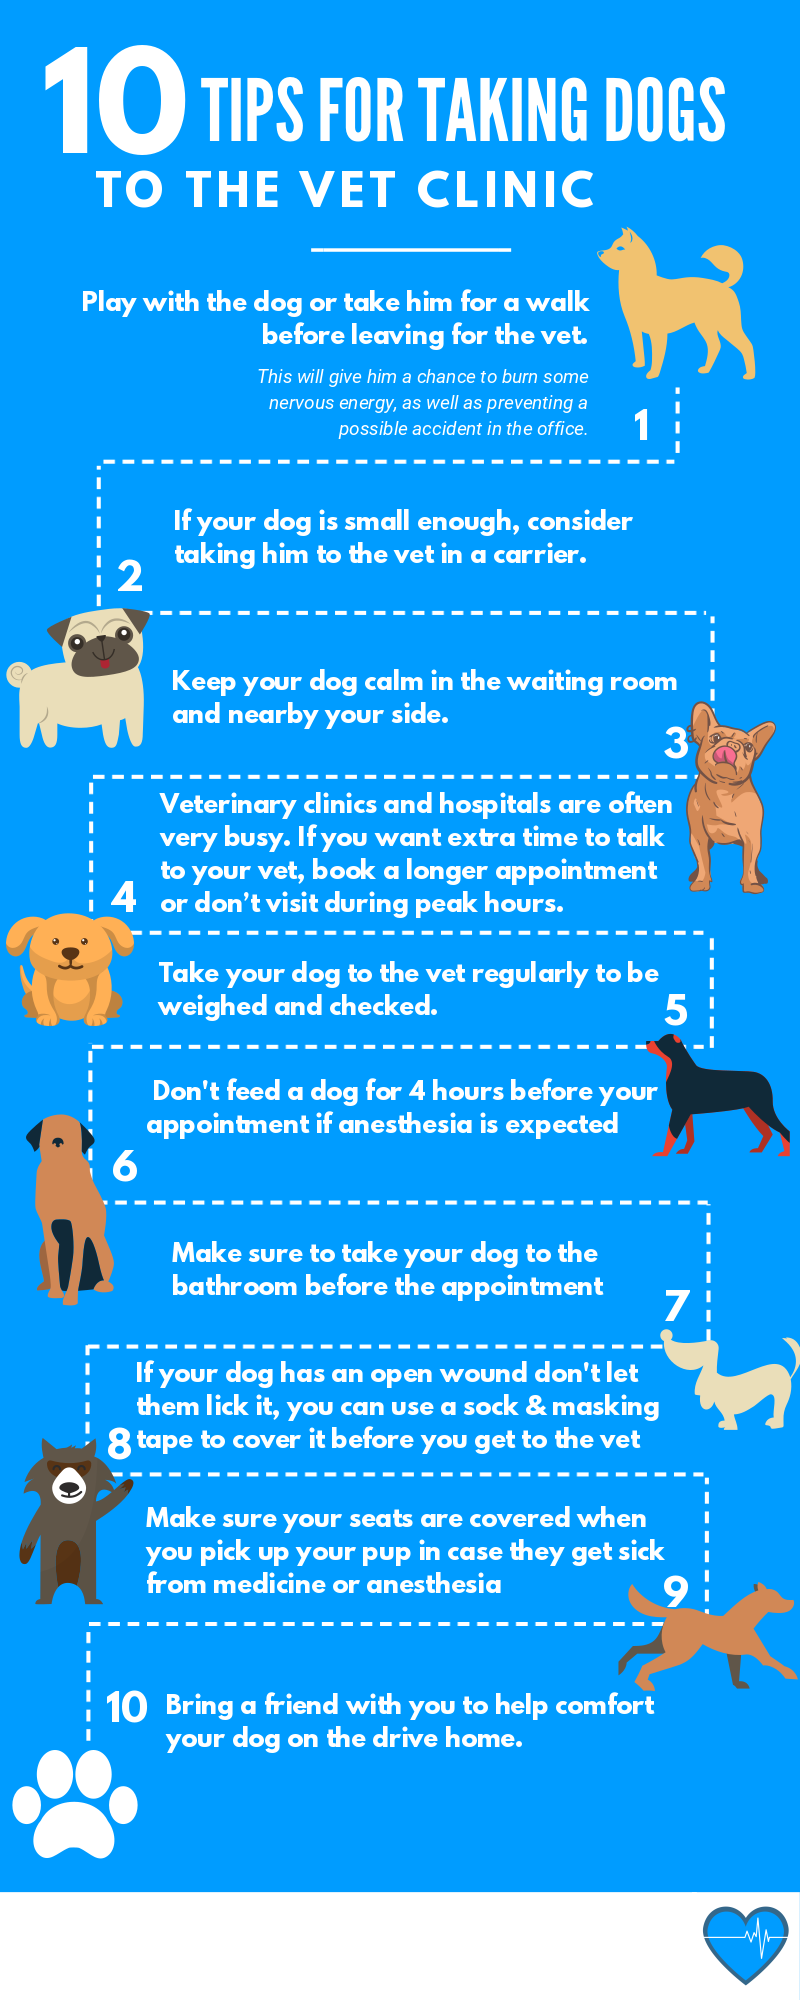 Follow These Simple Tips To Have A Great Experience Taking Your Dog To The Vet Clinic If You Love Animals You May Want To Consi Vet Clinics Vets Veterinarian